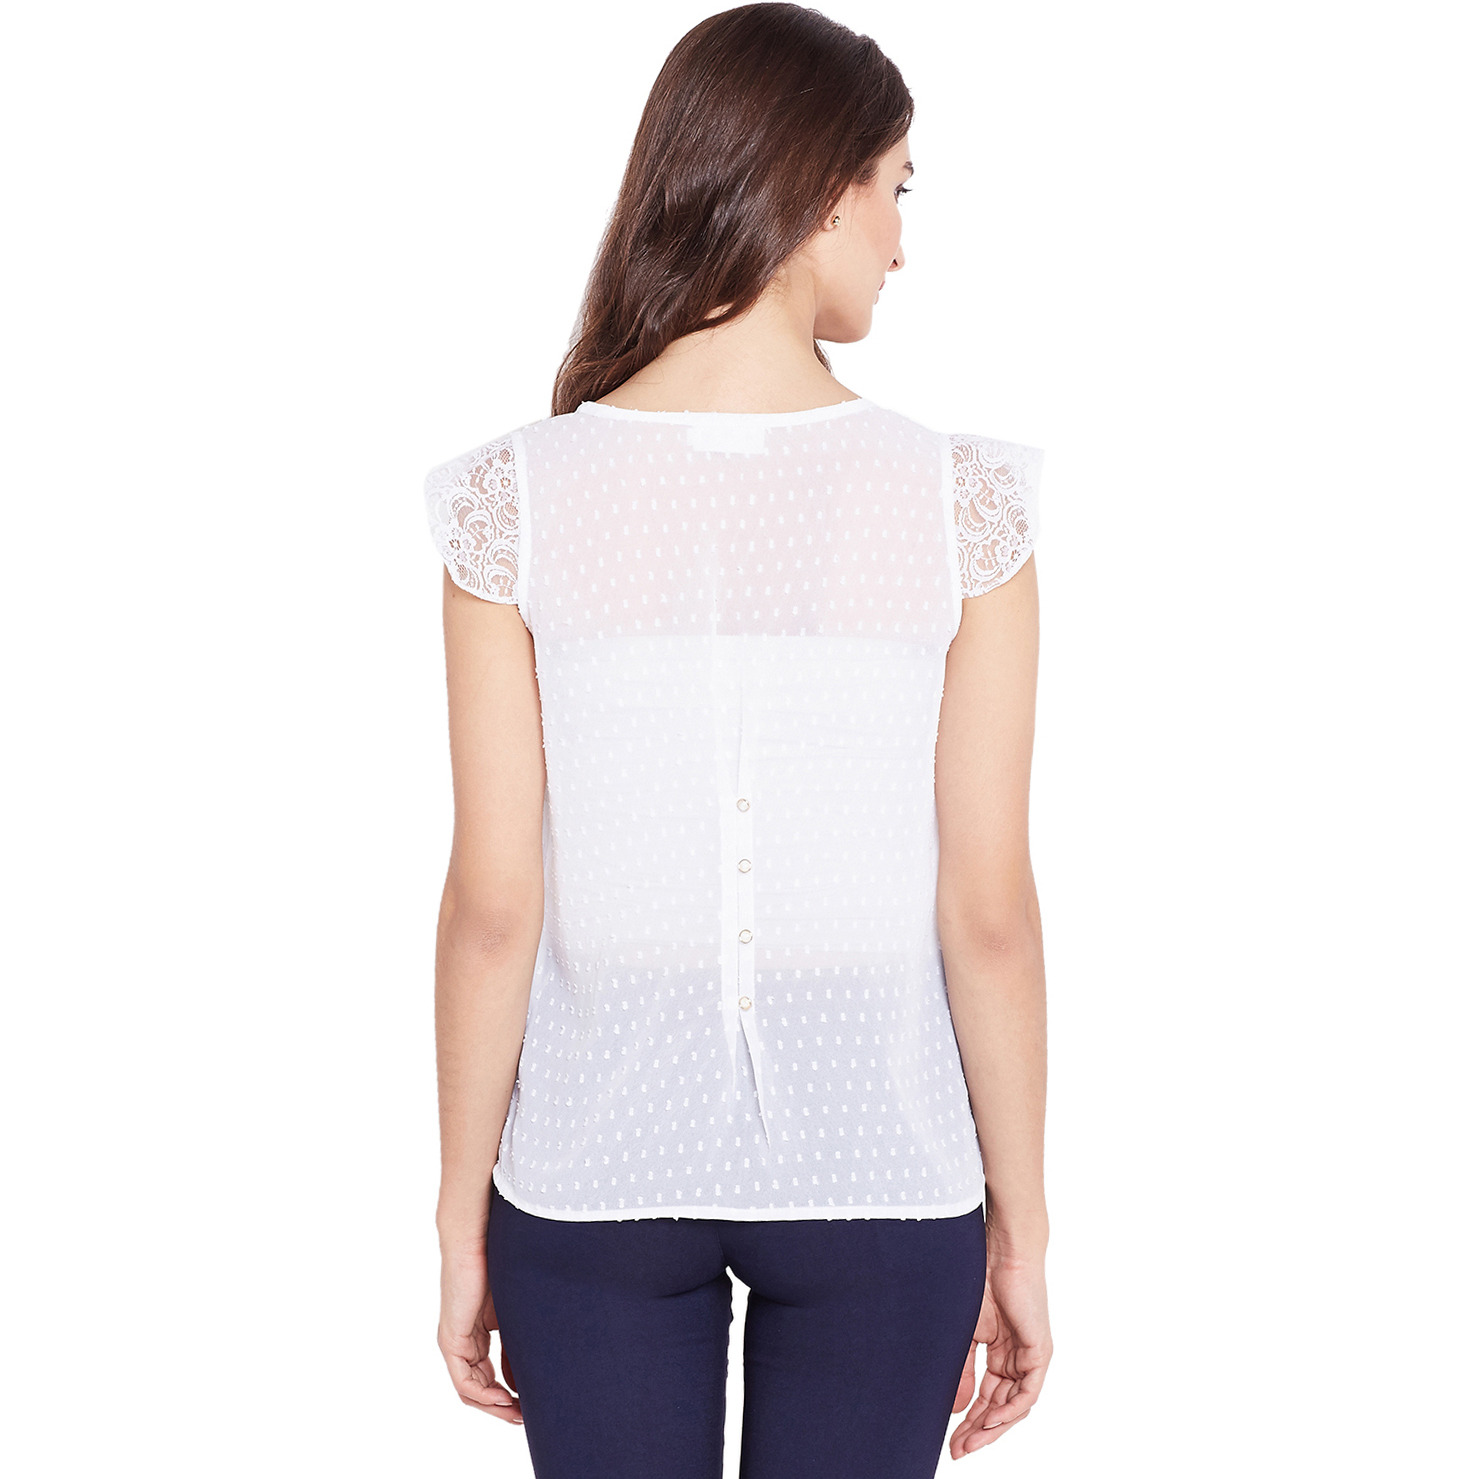 Purplicious White Swiss Dot Chiffon Top With Buttons On The Back And Lace